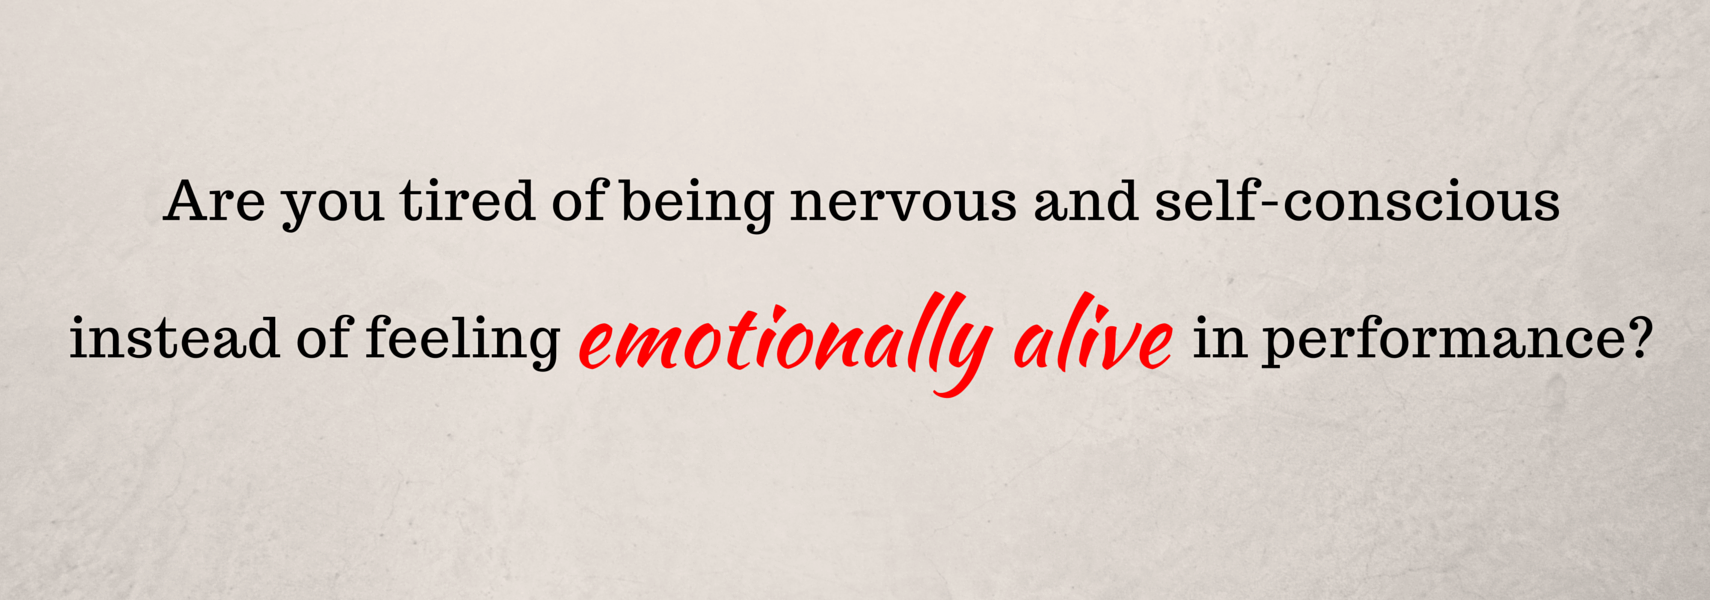 Are you tired of being nervous and self-conscious instead of feeling emotionally alive in performance?